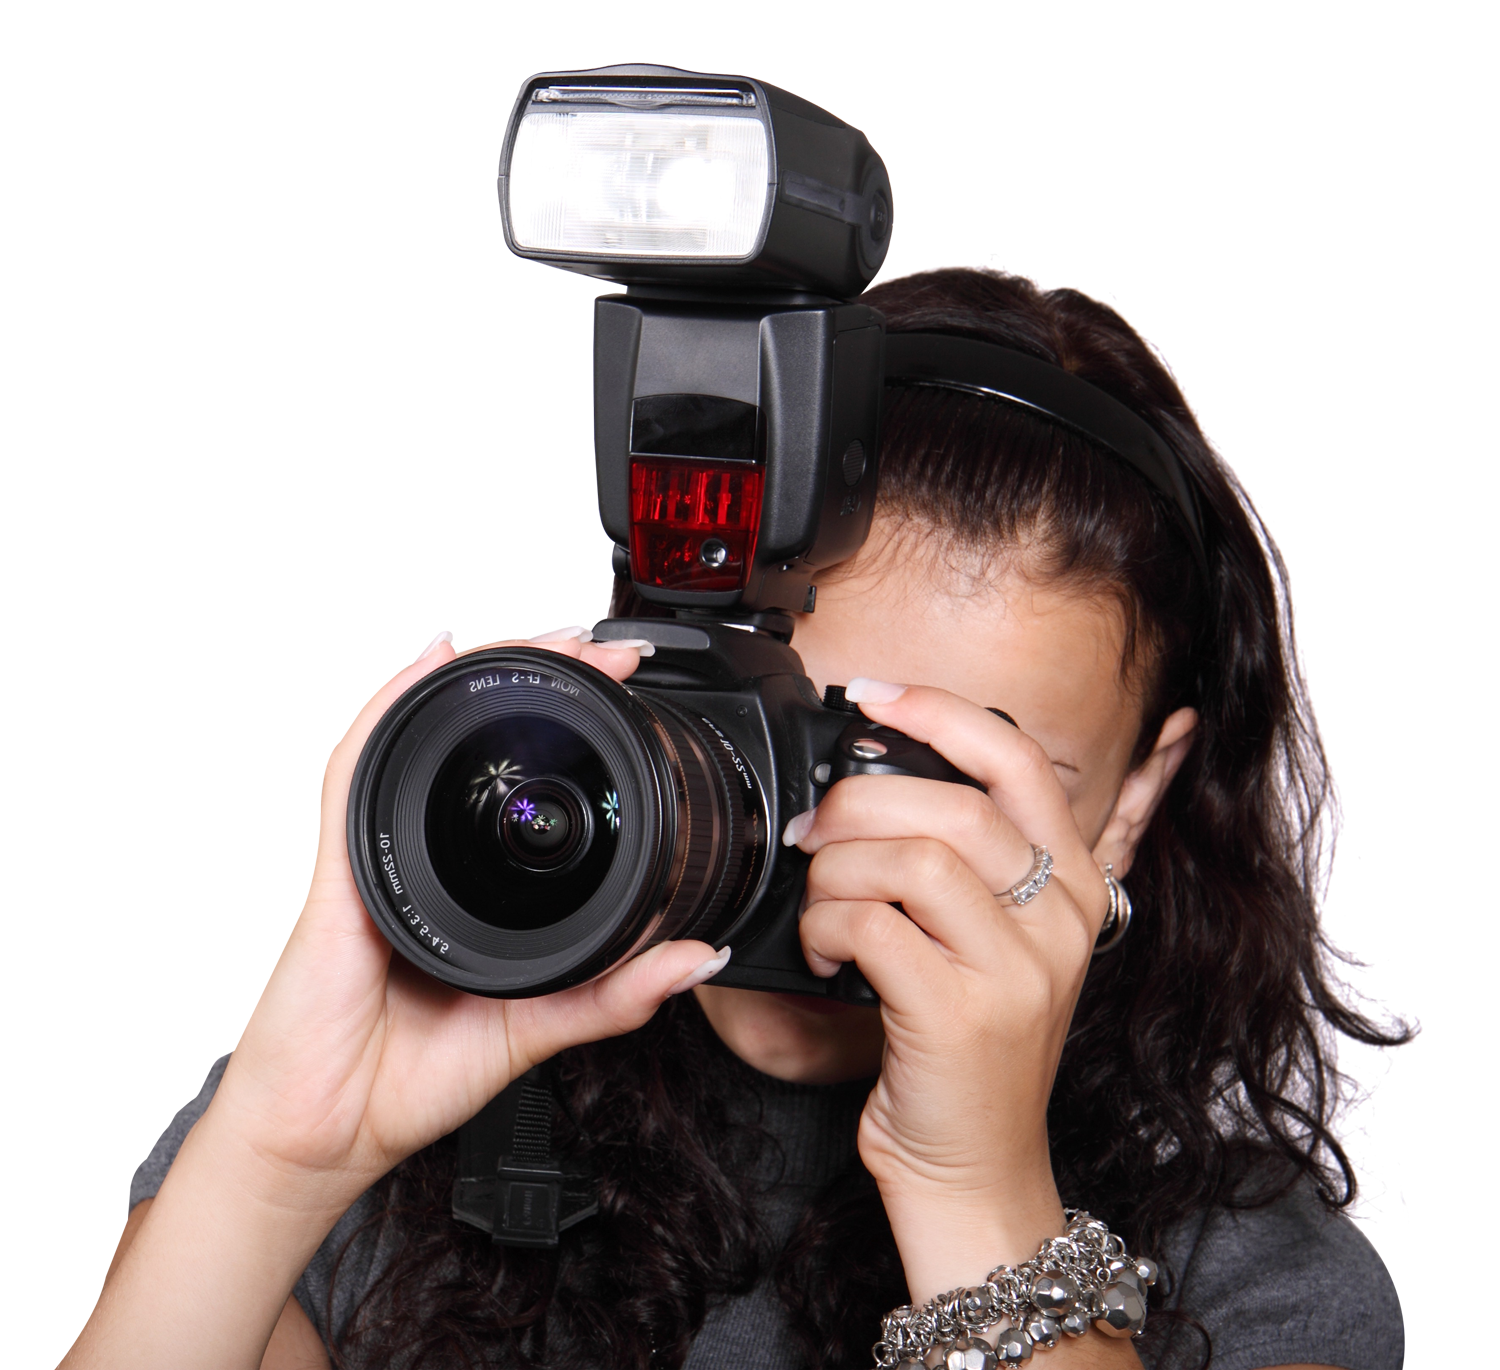 Camera photography png. Woman taking photo with